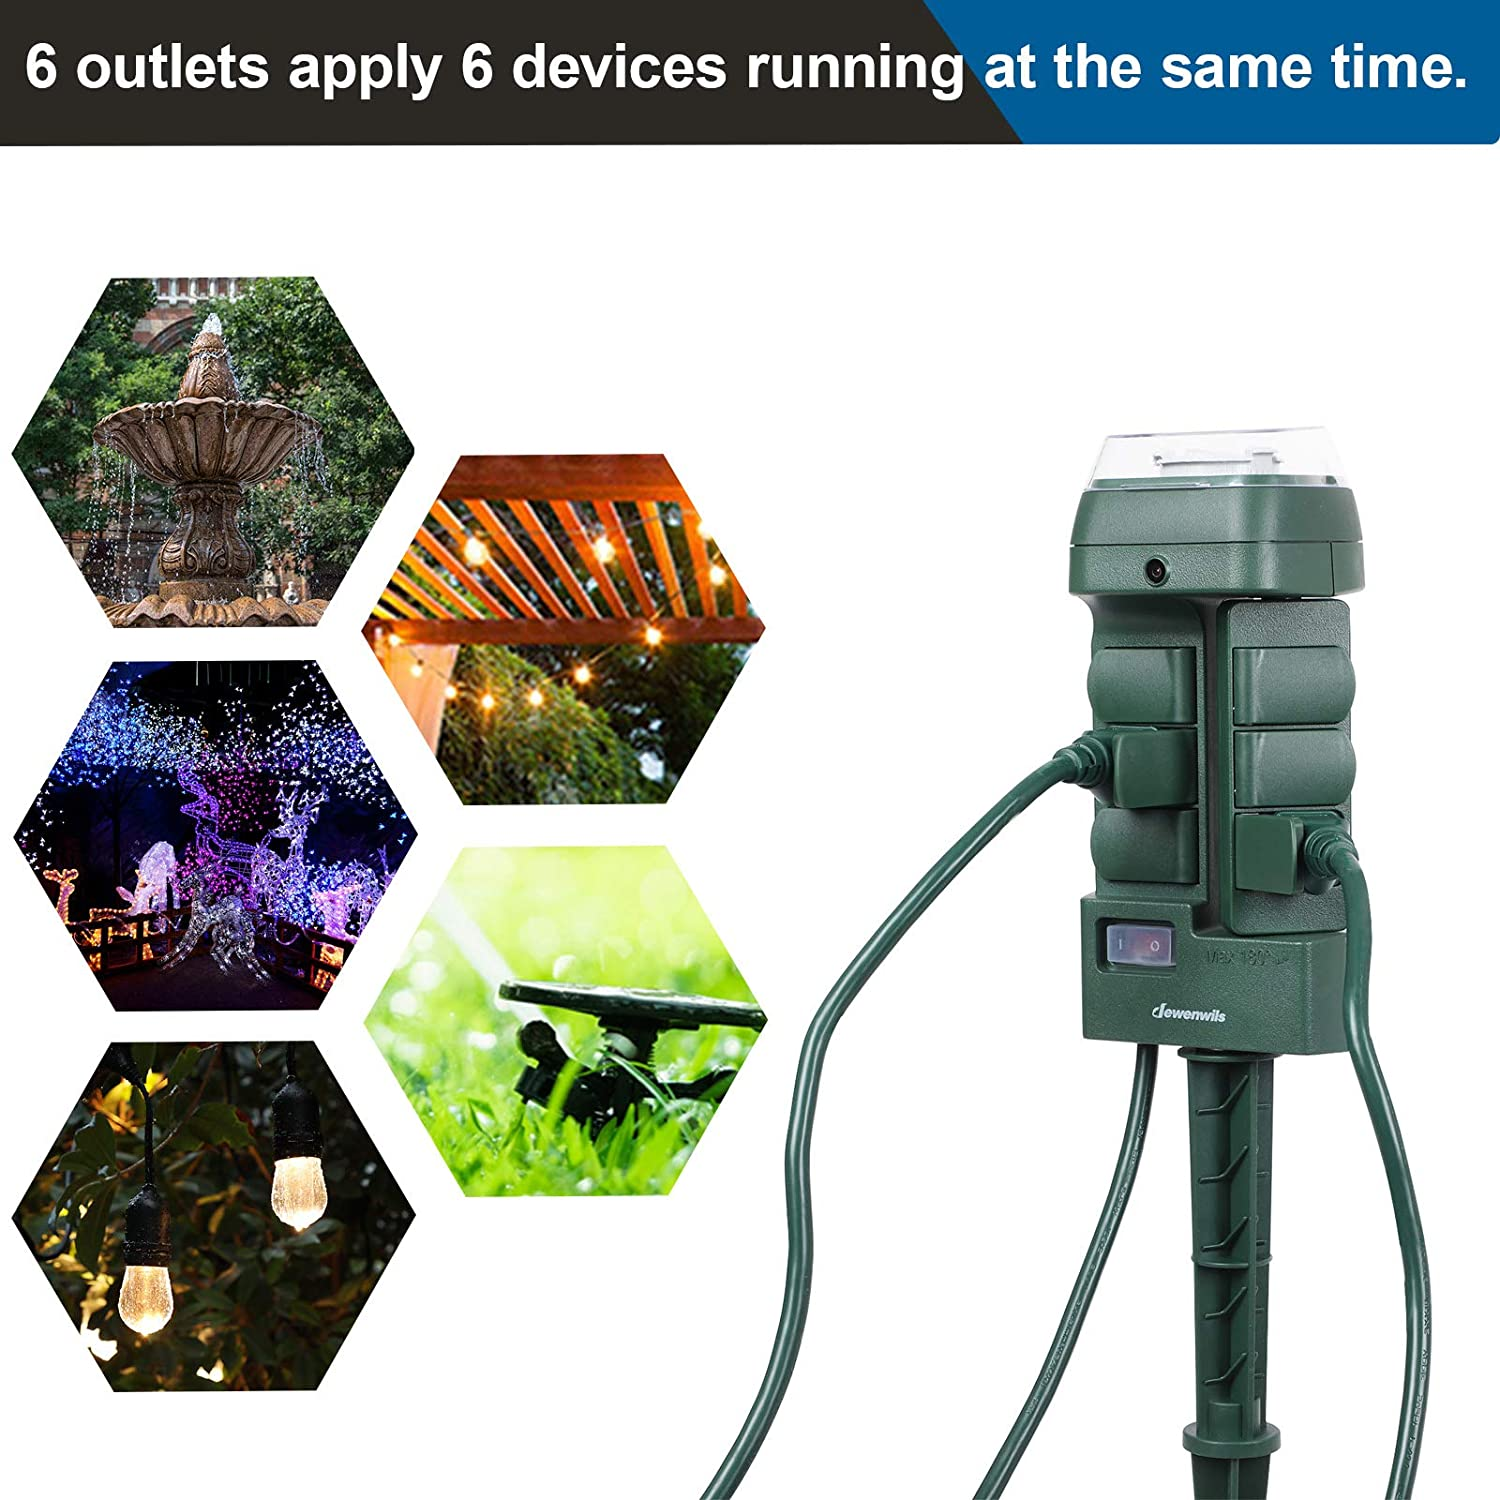 FCC and ETL Certified 6 FT Extension Cord DEWENWILS Smart Outdoor Power Strip Weatherproof Compatible with Alexa WiFi 6 Outlet Yard Stake Timer Switch for Lights Google Assistant and IFTTT